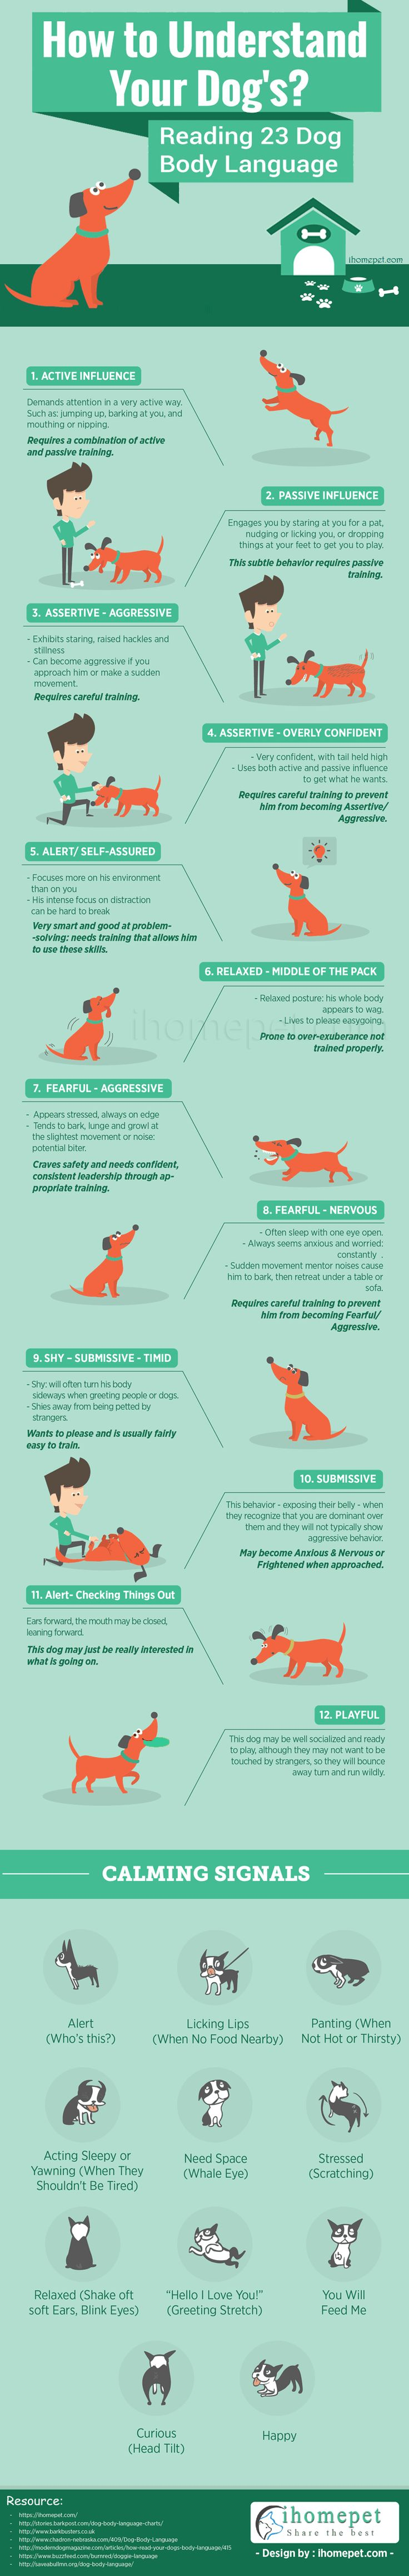 How to Understand Dog Body Language